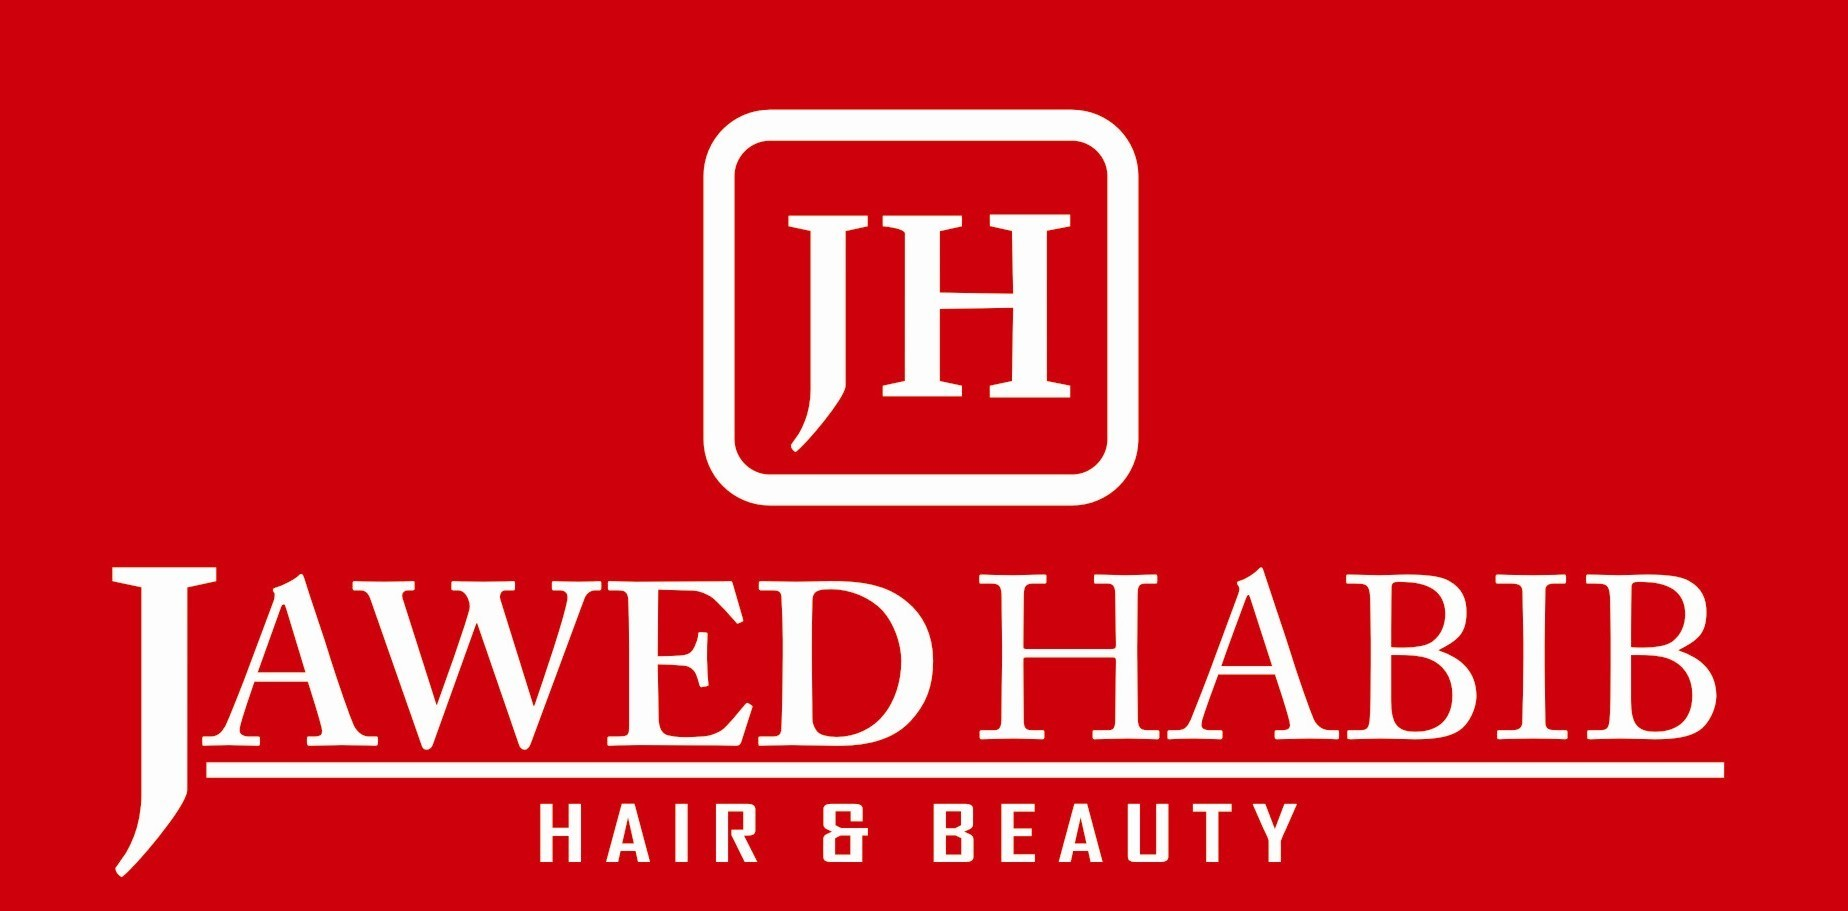 Jawed Habib Hair & Beauty Salons - Sector 127 - Kharar Image